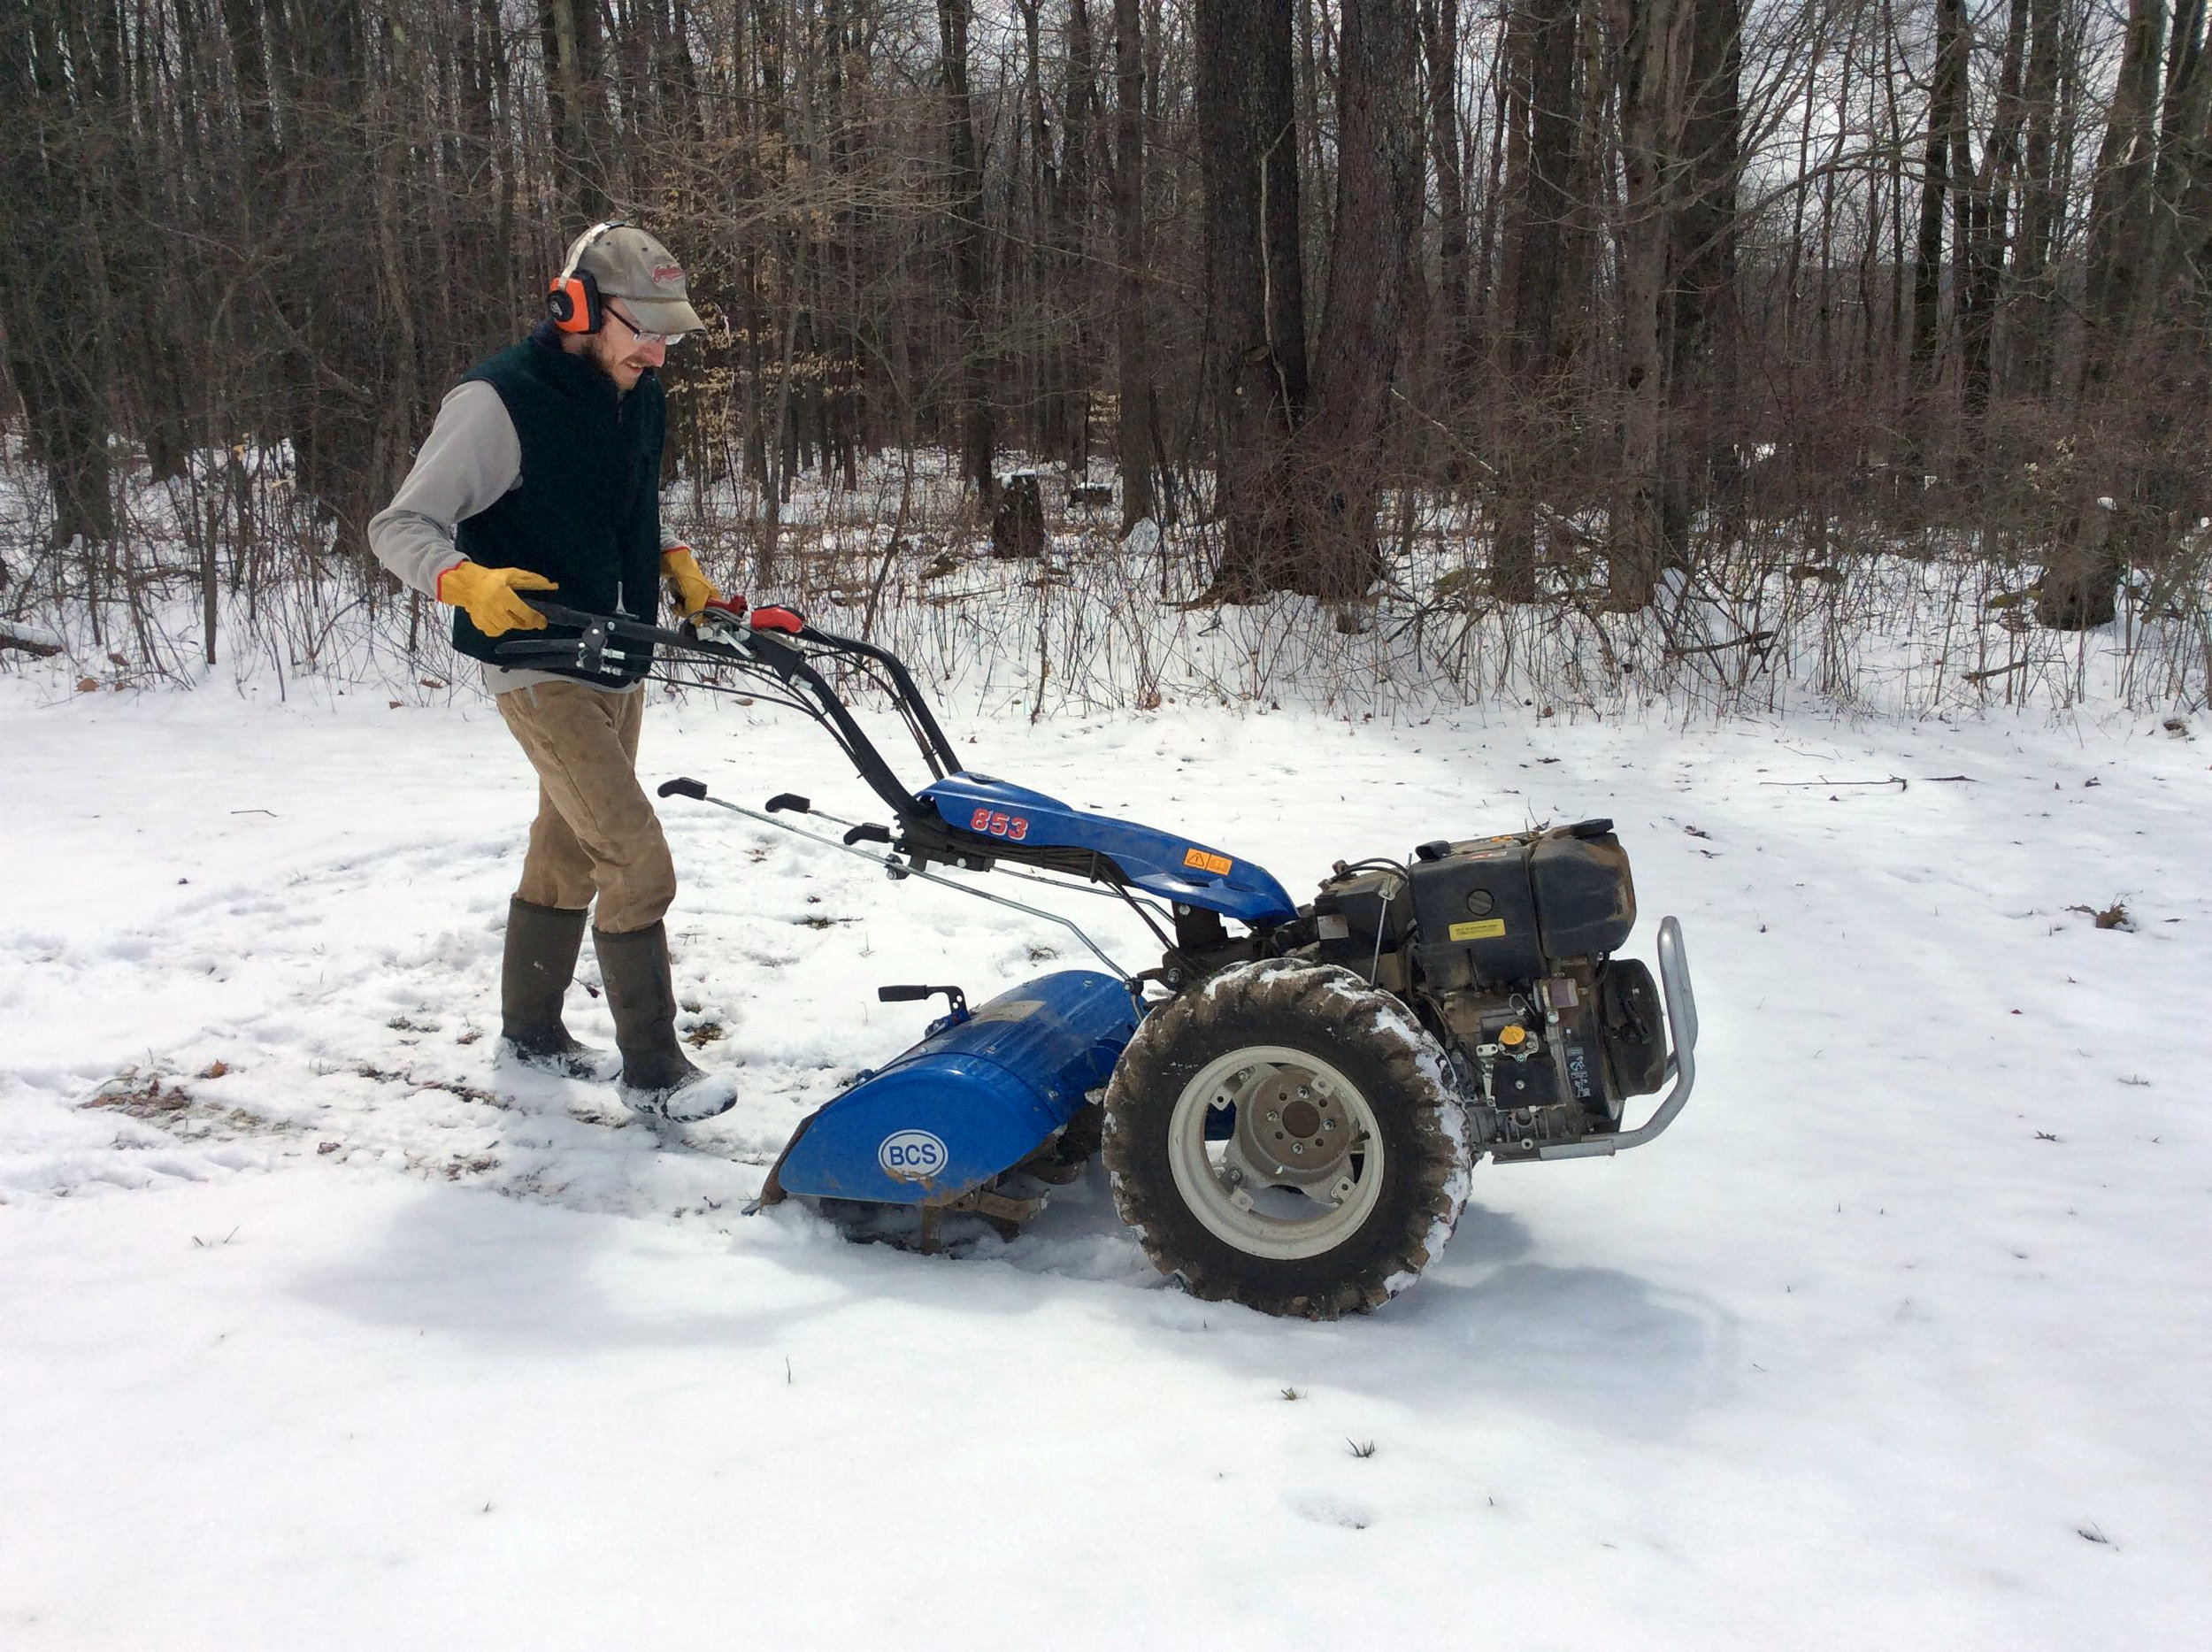 Jason tilling up snow with the BCS.